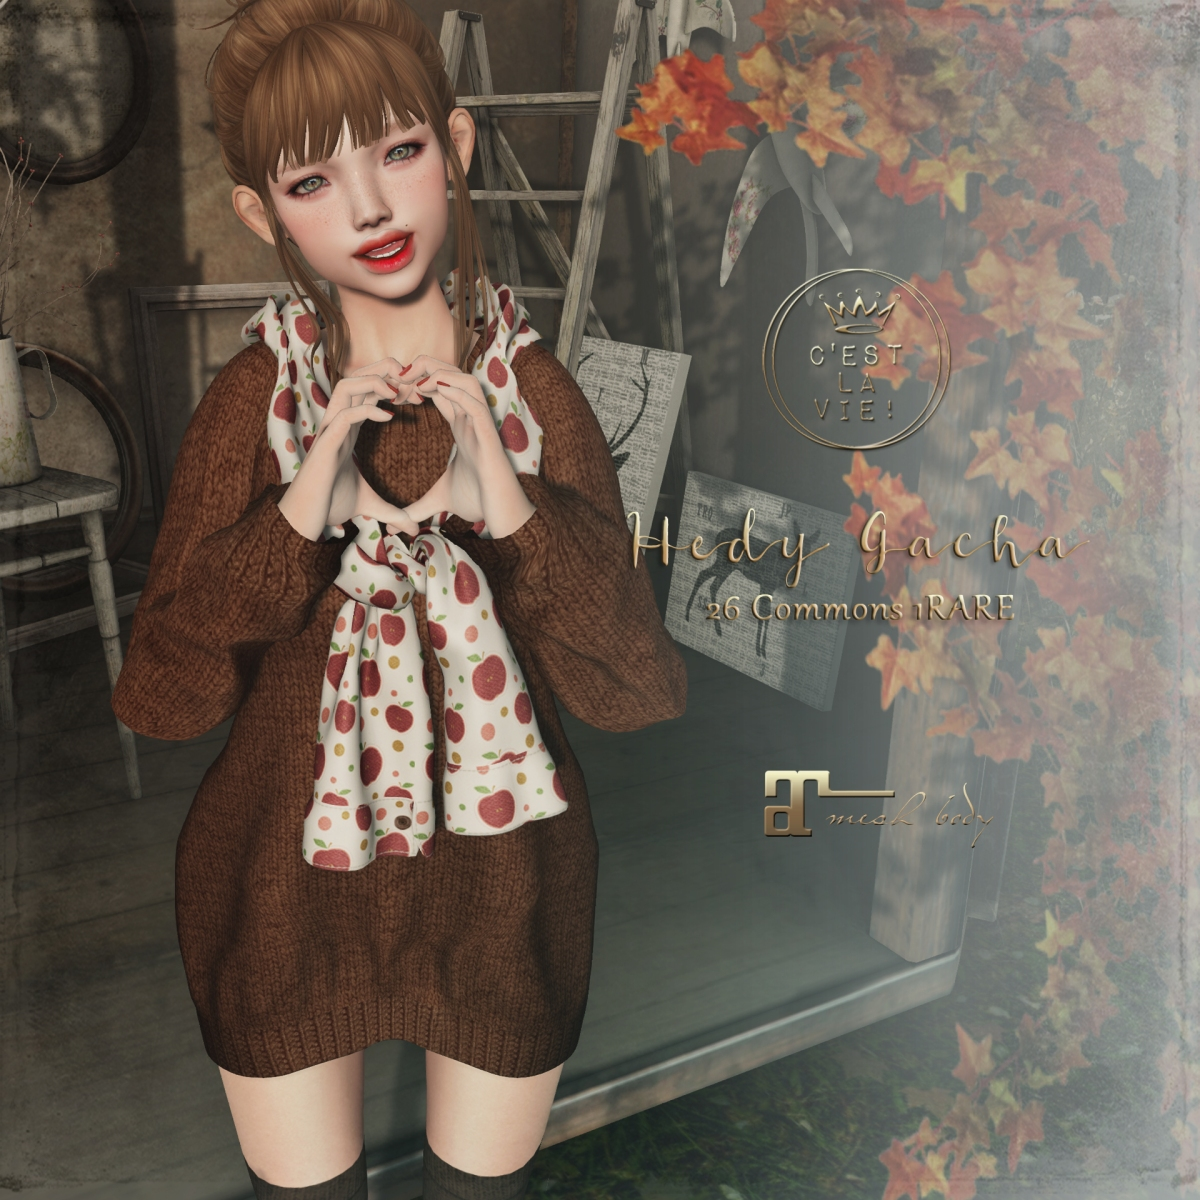 ::C'est la vie !:: Hedy Gacha 🍂The Project Se7en🍂